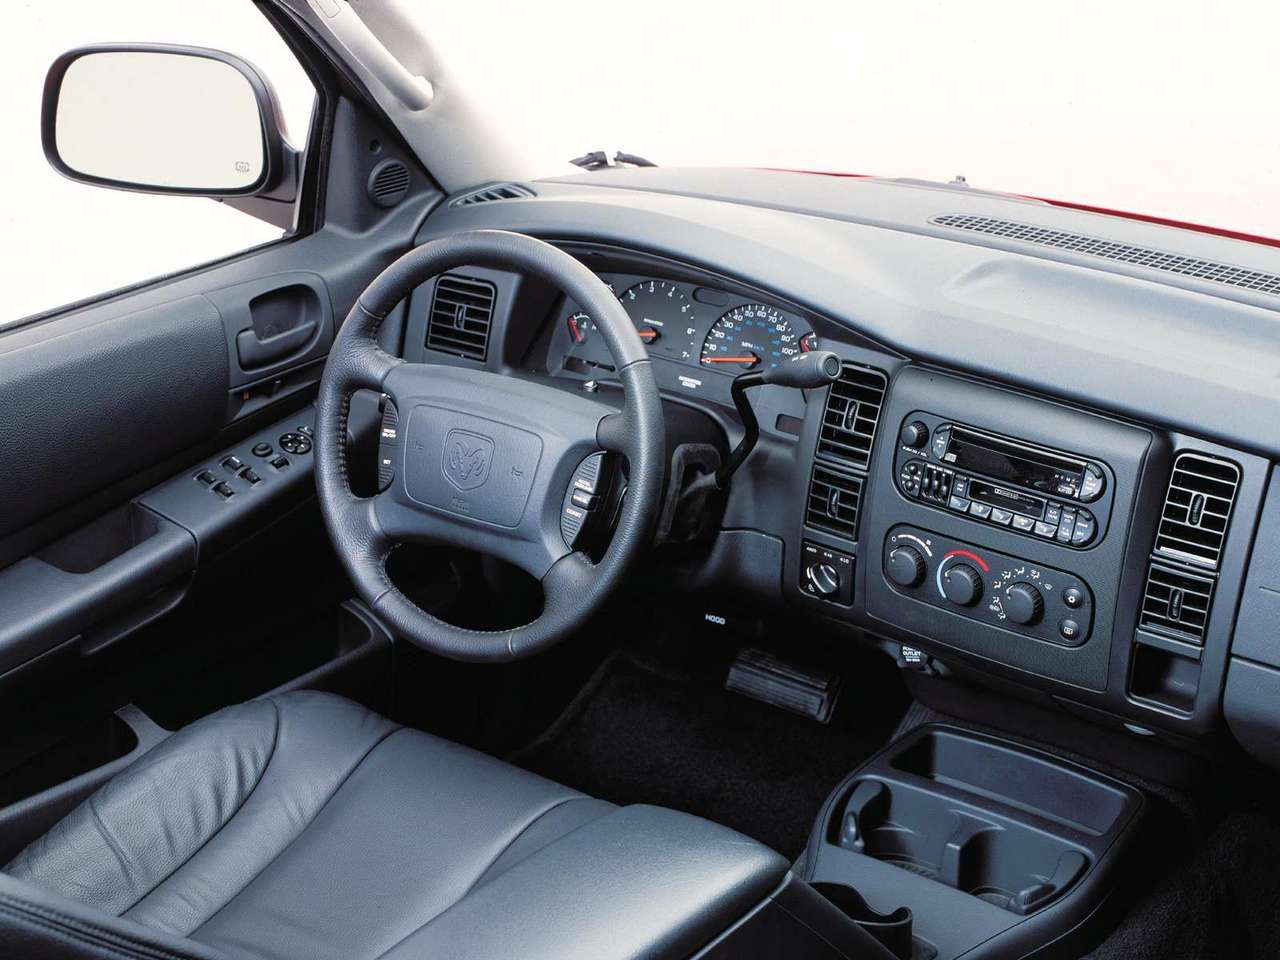 Dodge Dakota X Wallpaper on 2001 Dodge Dakota Sport 4x4